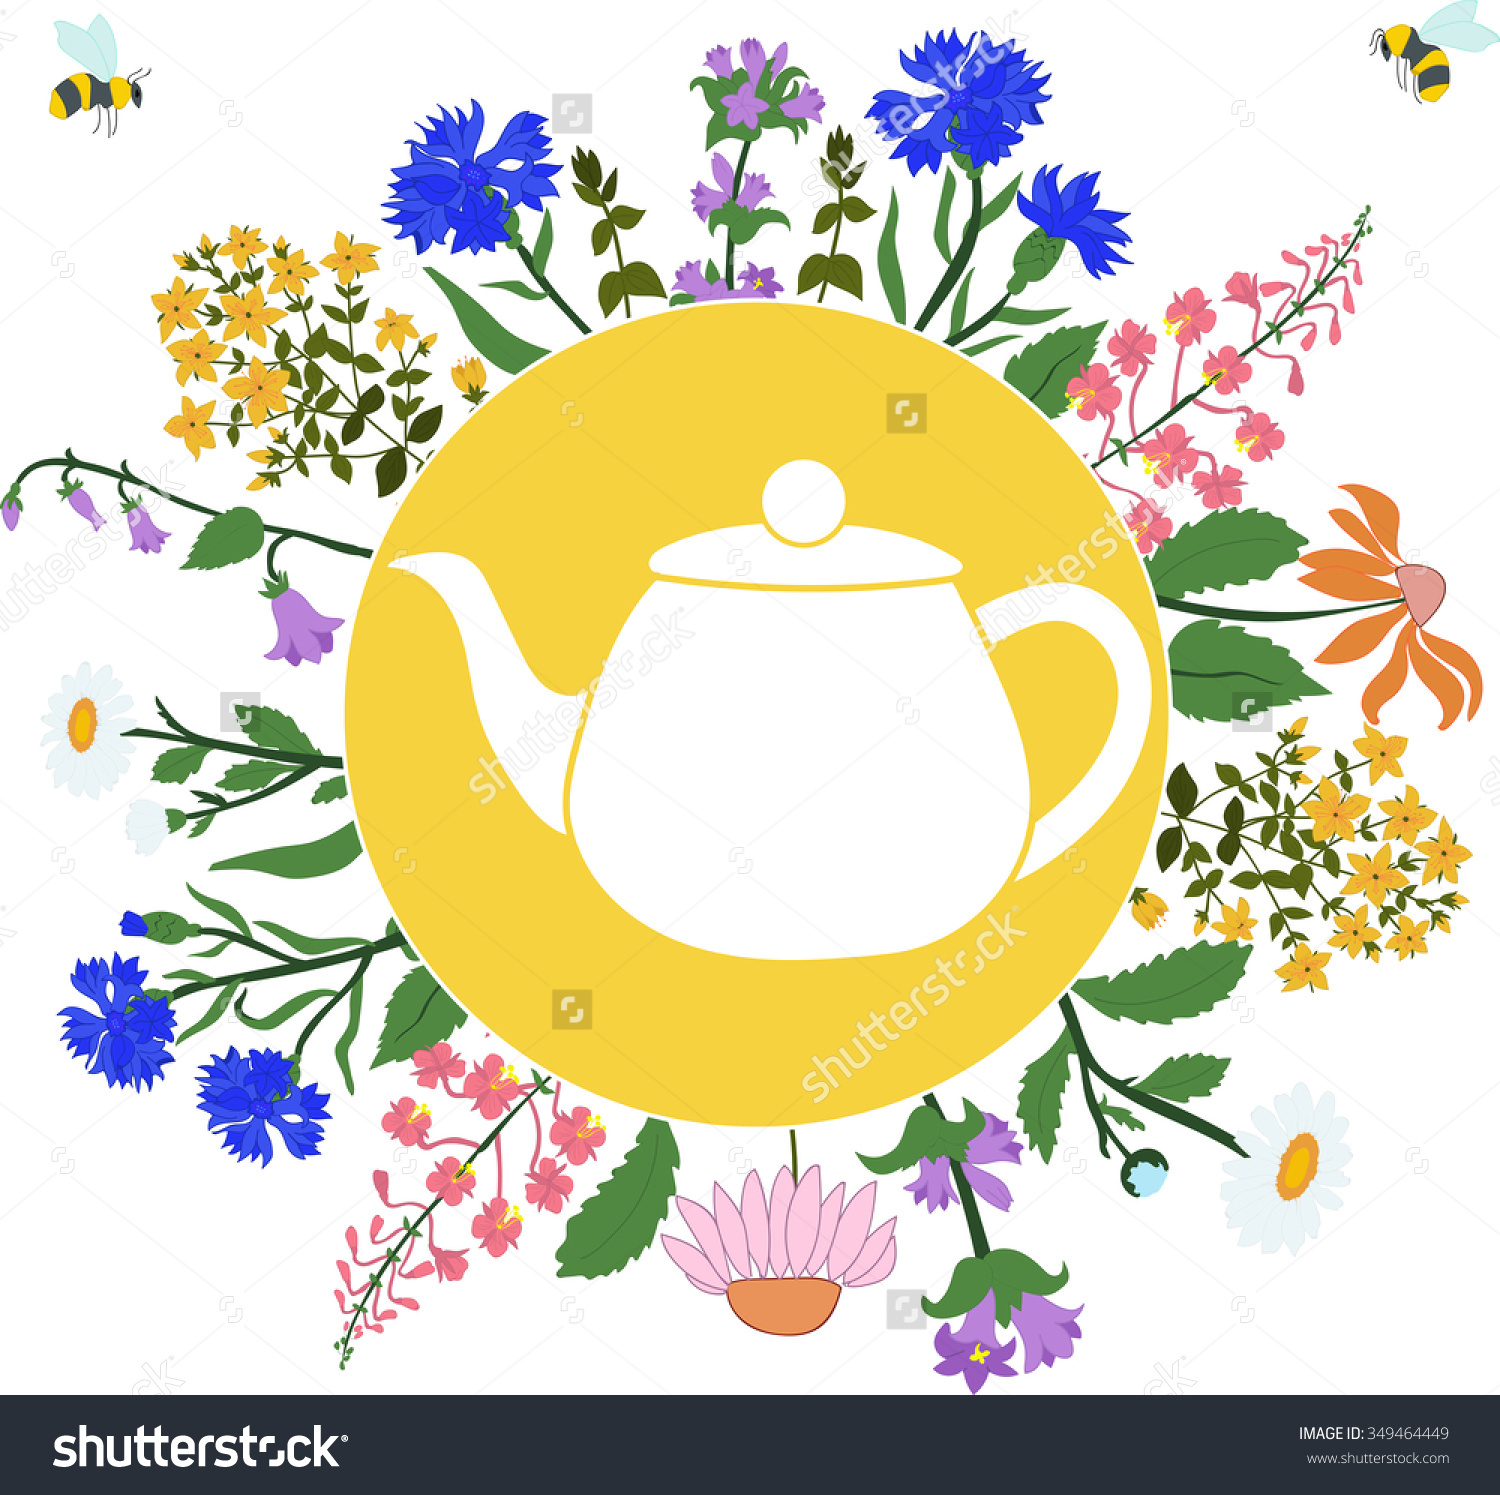 Teapot Herbs Around Teapot Circle On Stock Vector 349464449.